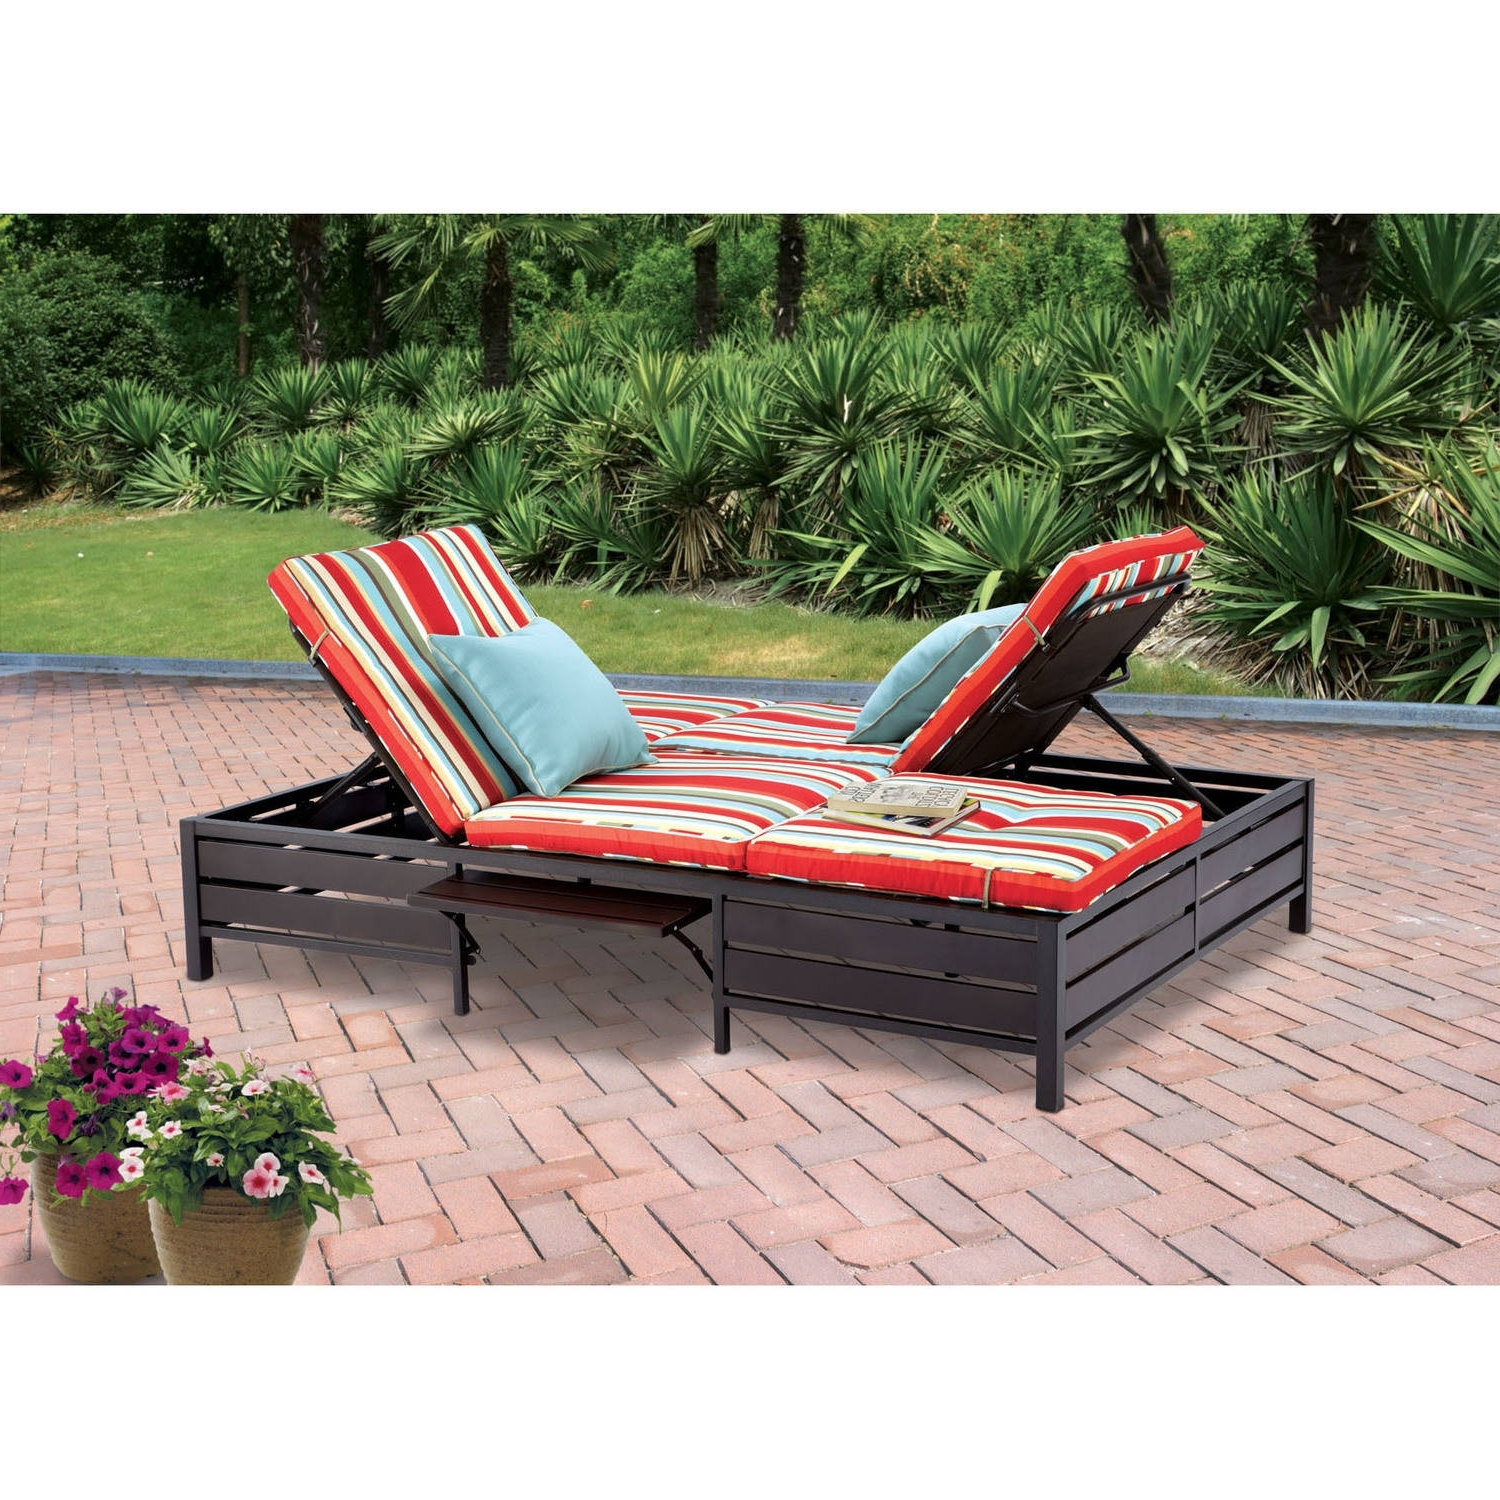 Most Popular Outdoor Chaise Lounge Chairs At Walmart Regarding Mainstays Outdoor Double Chaise Lounger, Stripe, Seats 2 – Walmart (View 5 of 15)